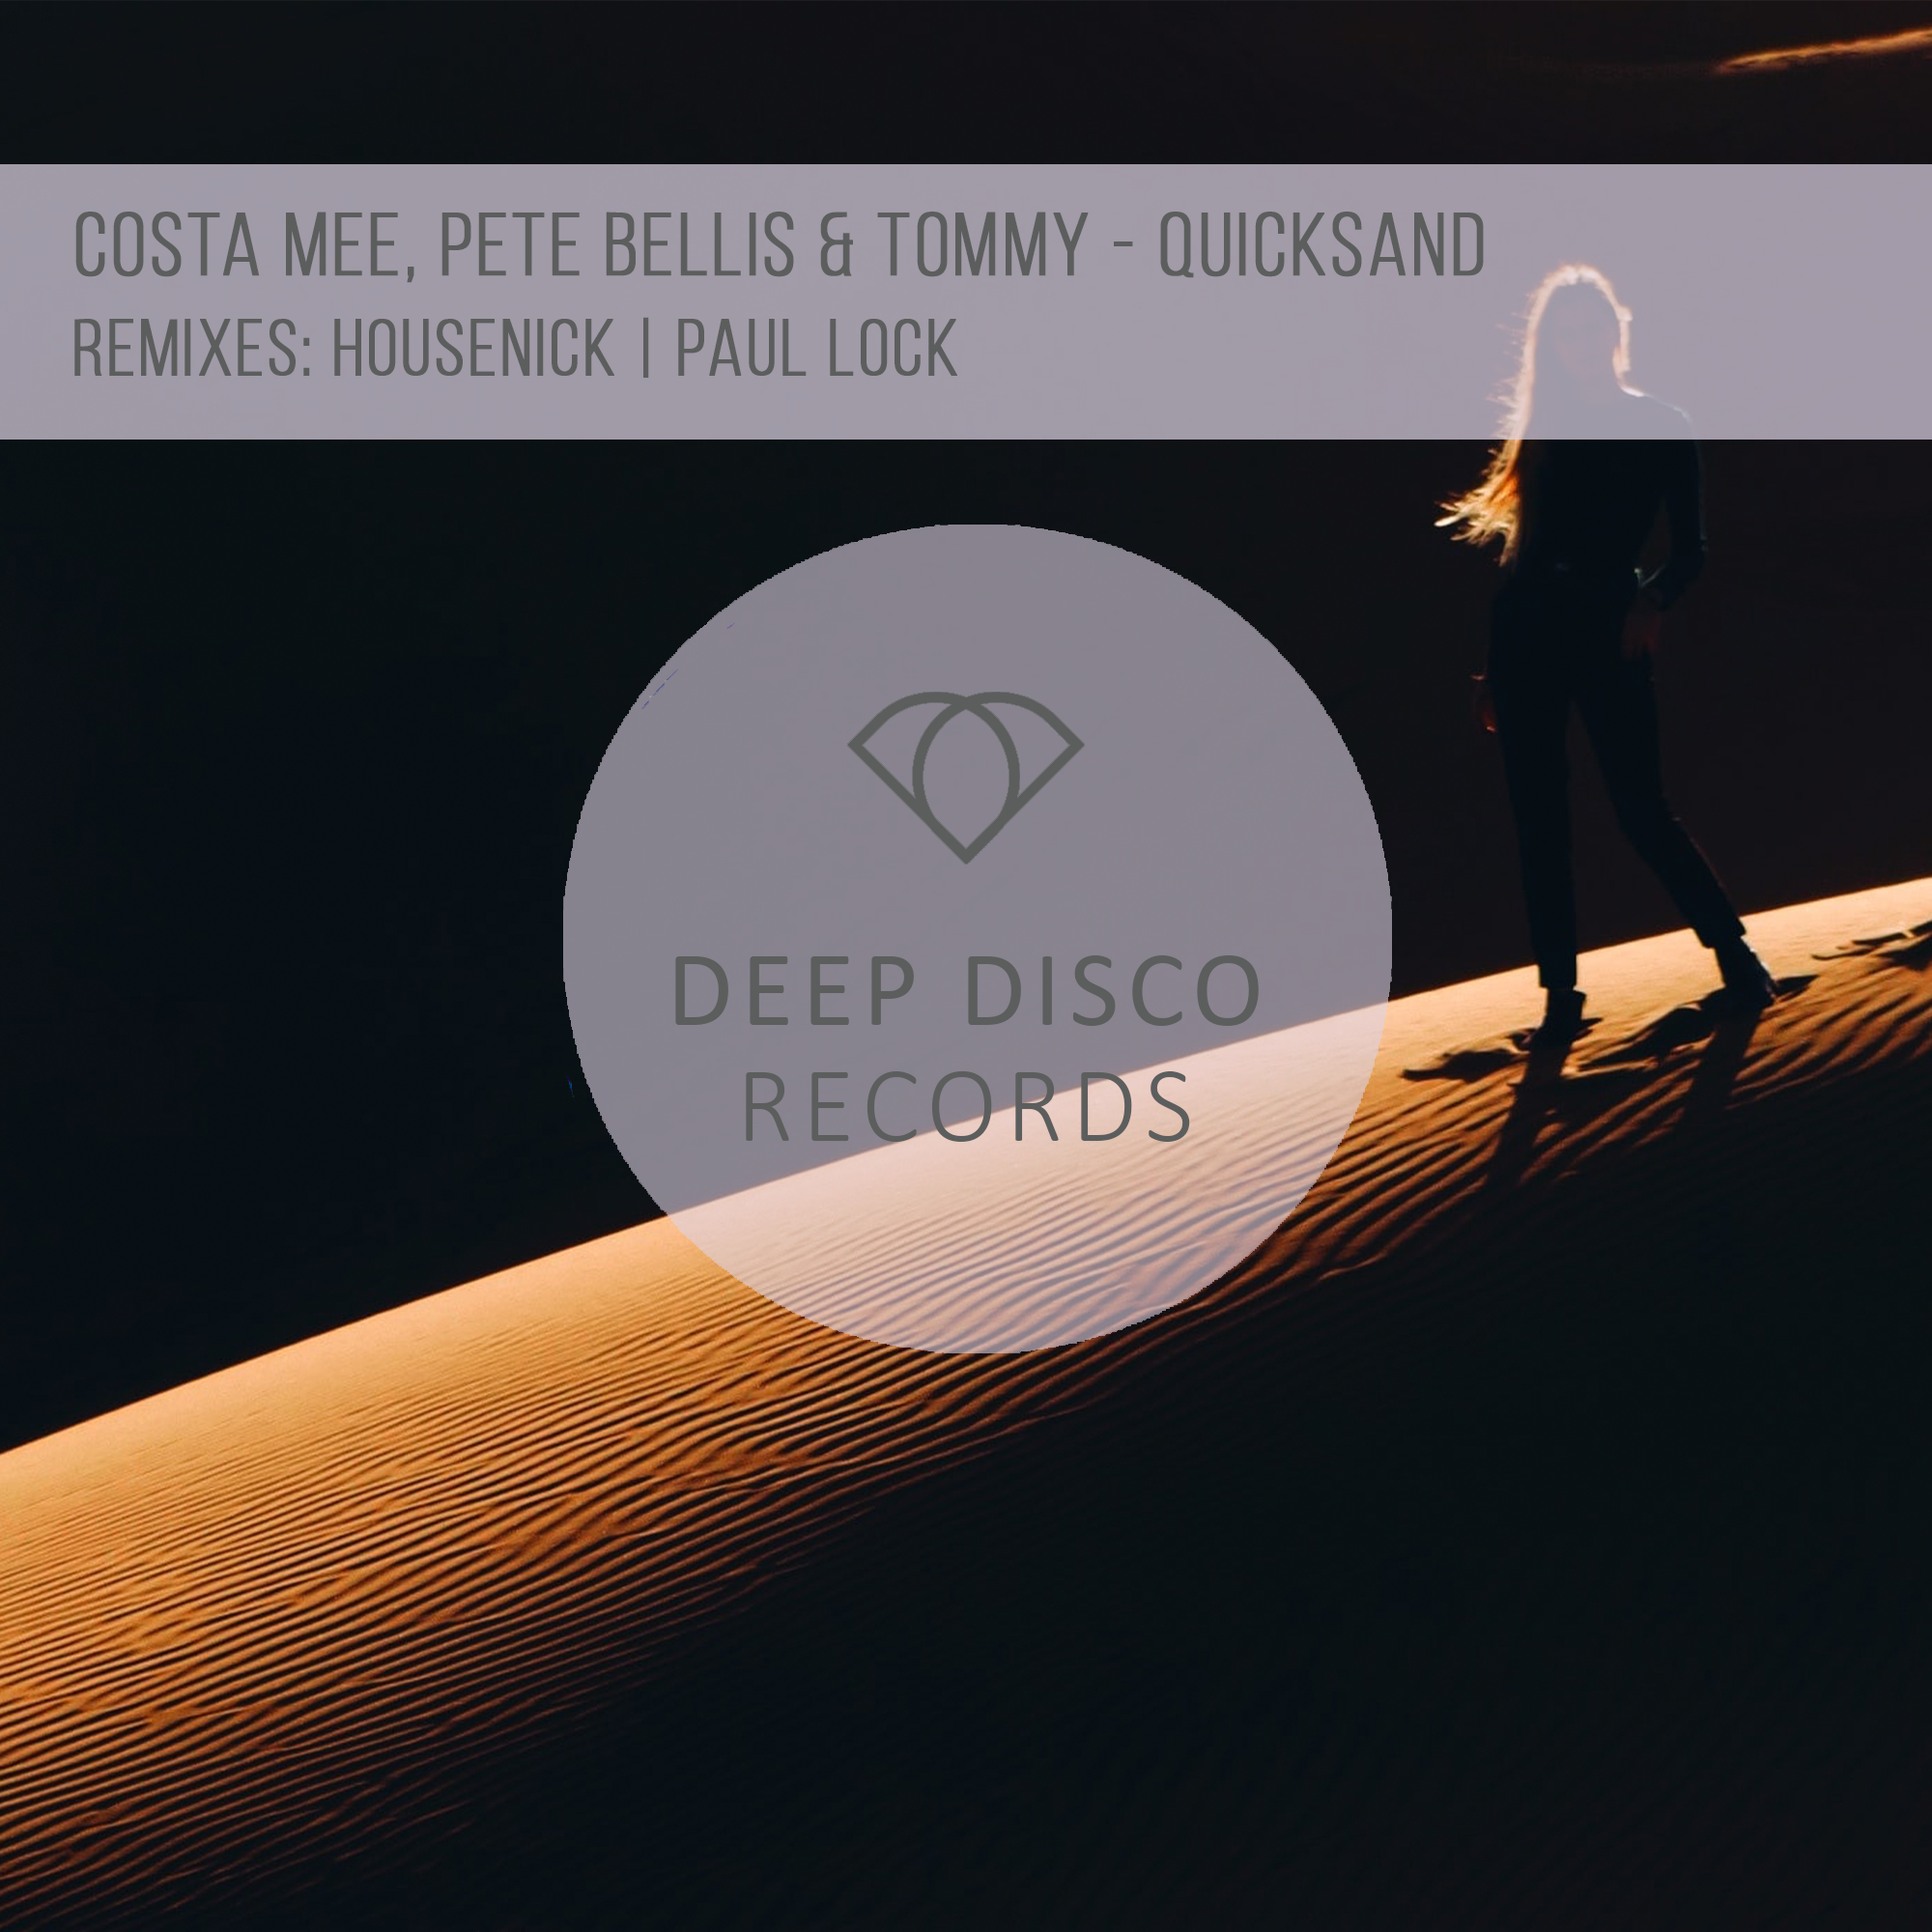 Costa Mee, Pete Bellis & Tommy - ‎Quicksand  Image